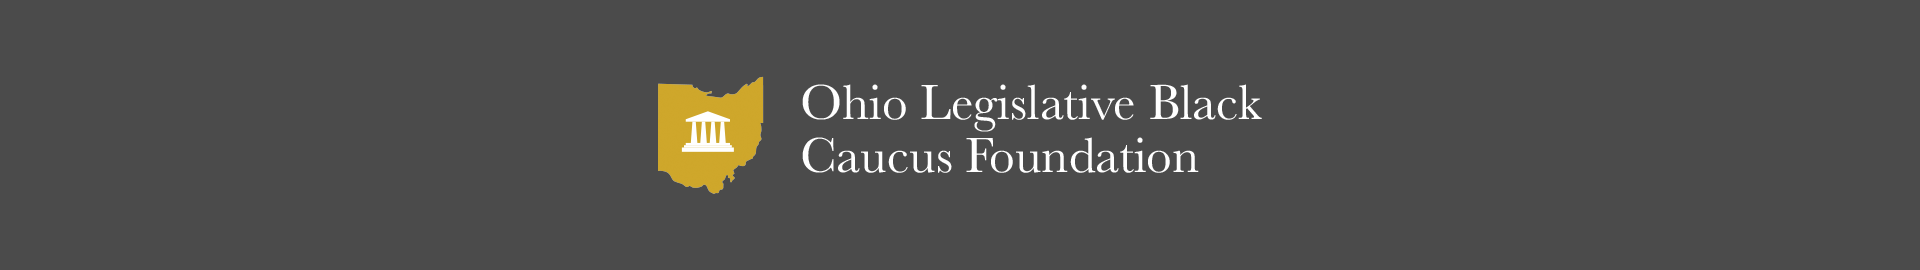 Ohio Legislative Black Caucus Foundation